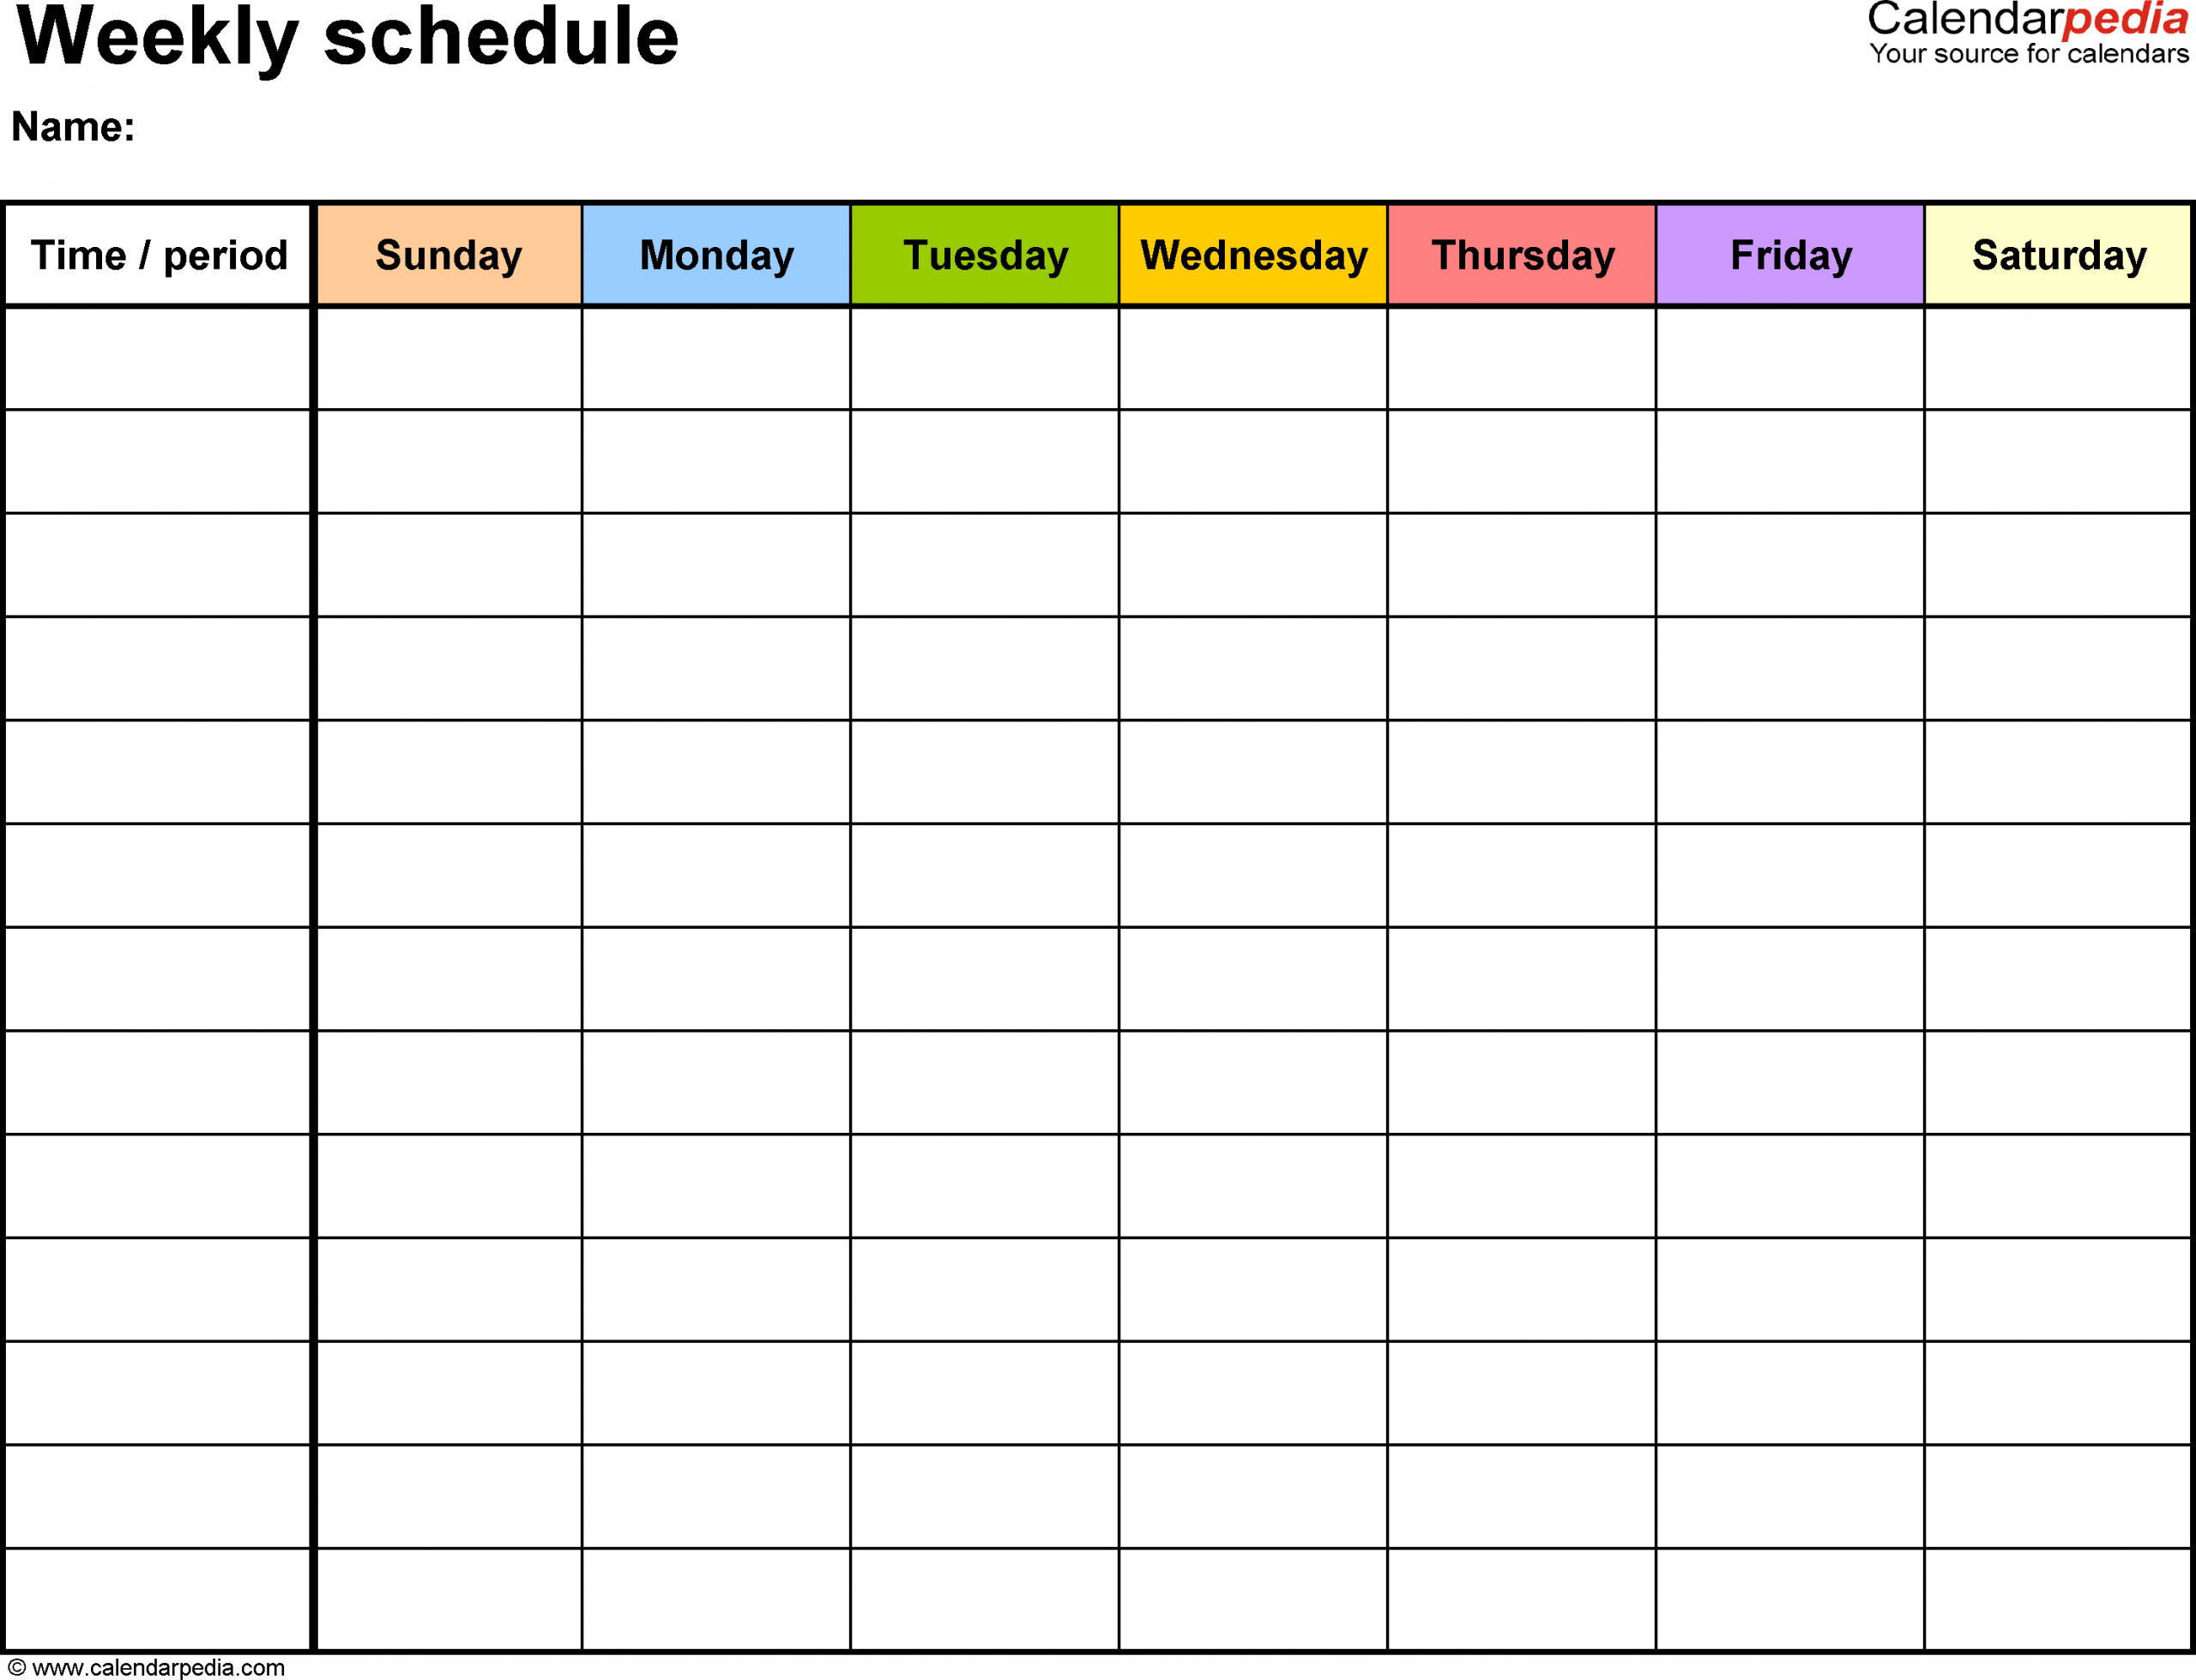 Weekly Schedule Template For Word Version 13: Landscape, 1 Sunday Through Saturday Template